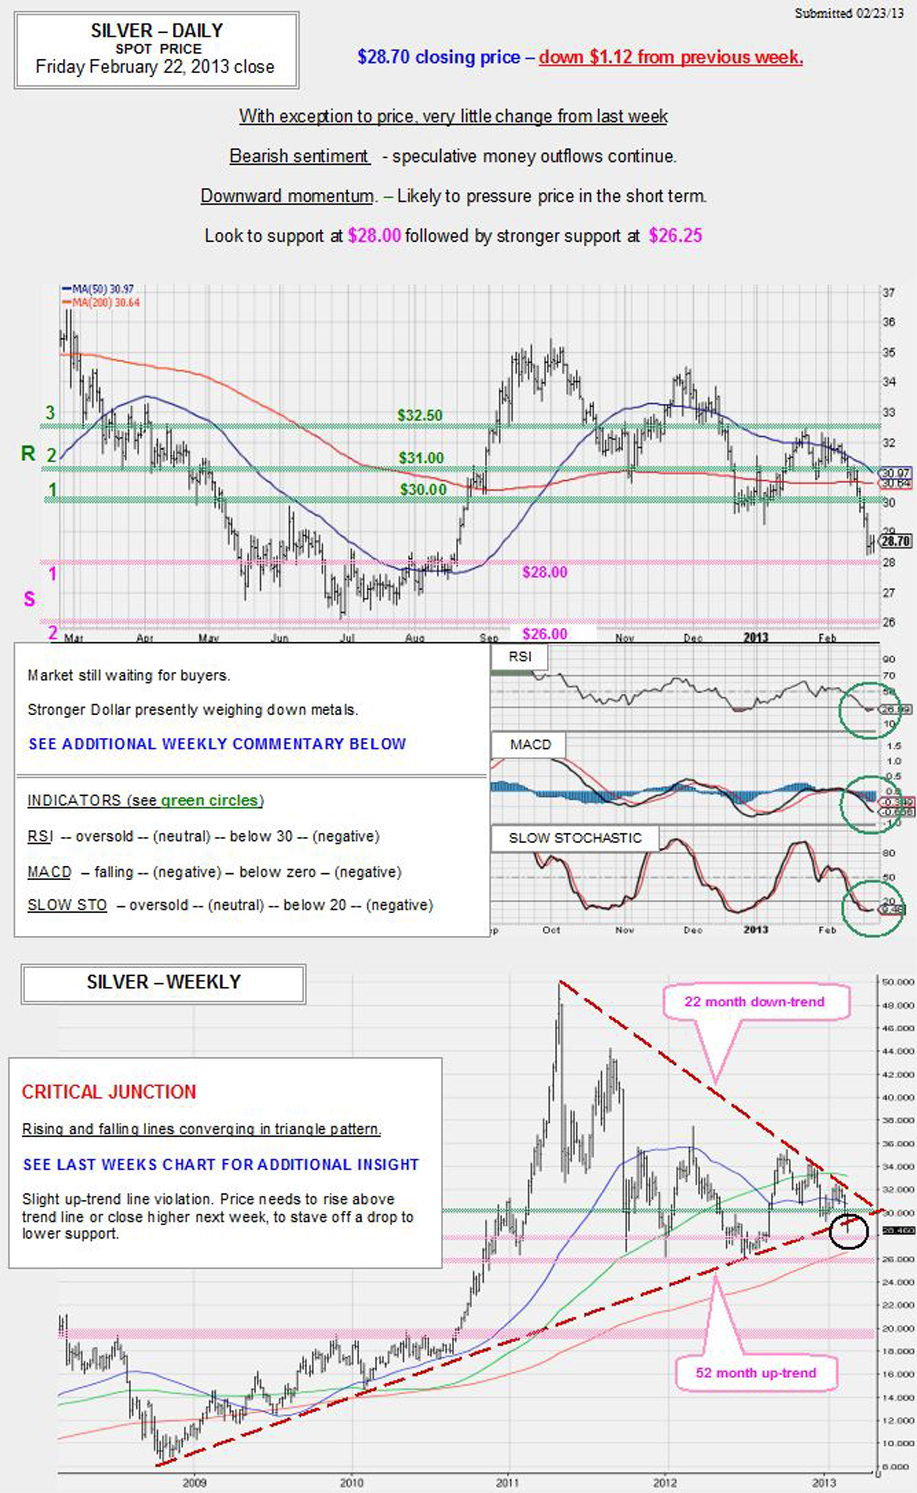 Feb. 22, 2013 chart & commentary